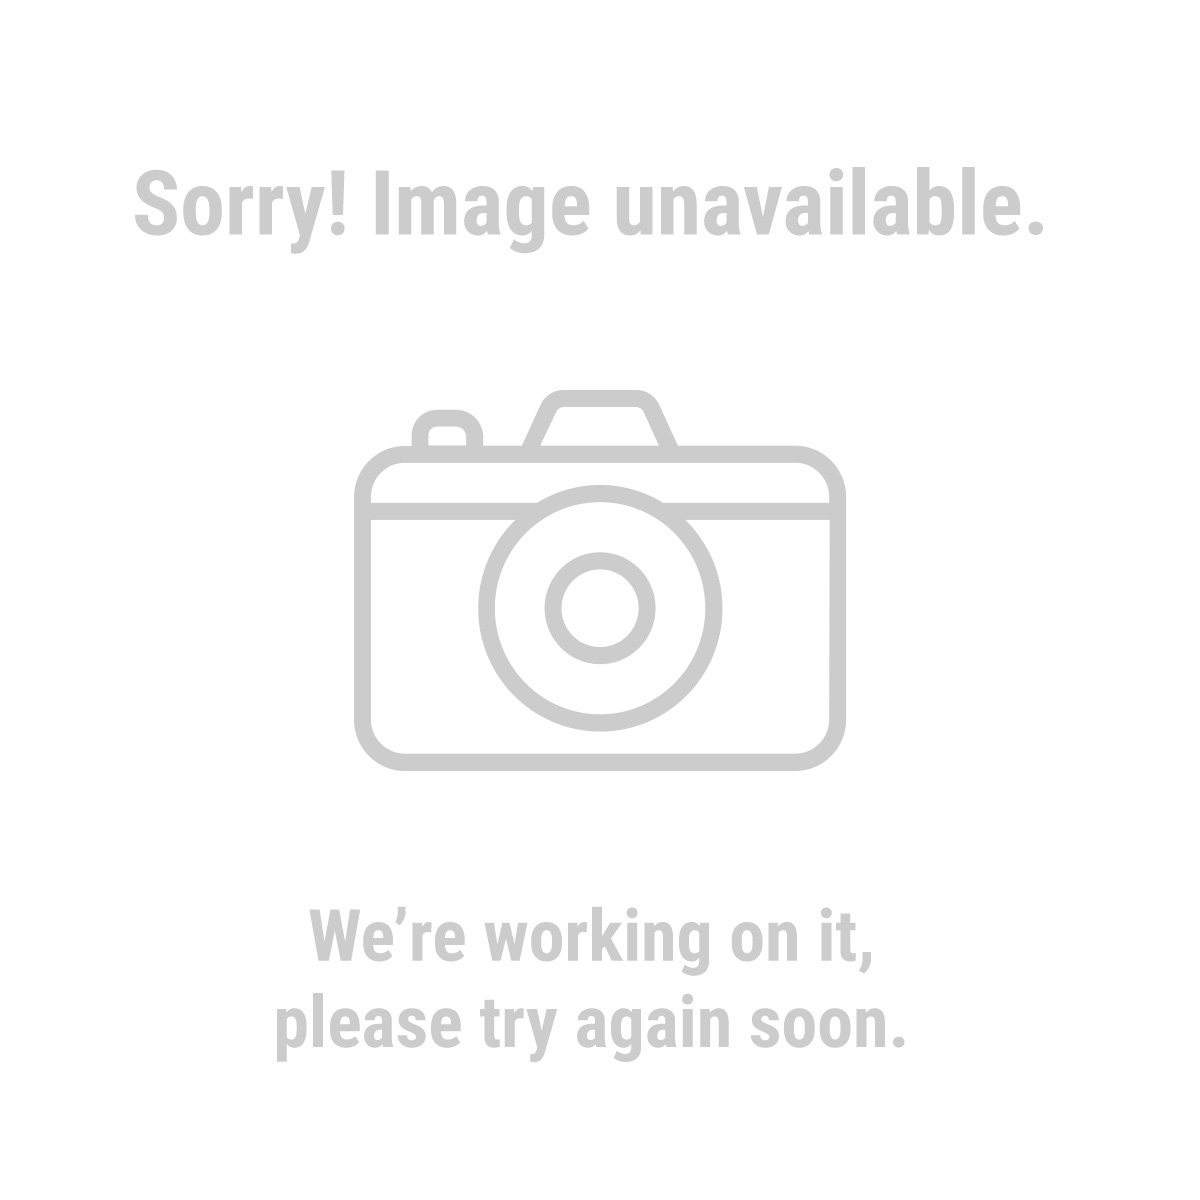 Warrior 61150 3In 40 Grit Metal Cutoff Wheel 25Pc